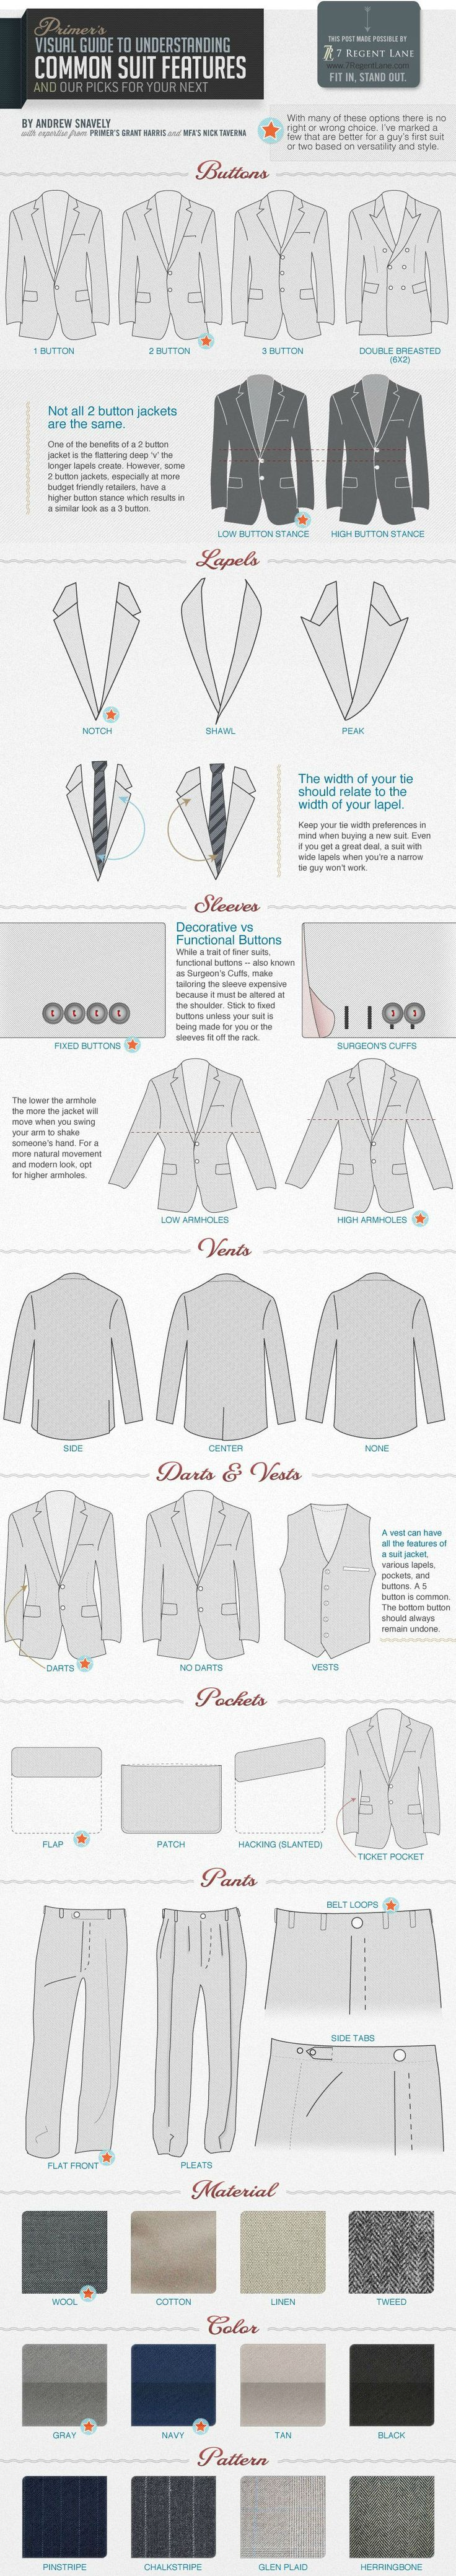 Visual Guide to understanding common suit features. (Buttons, lapels, sleeves, vents, darts & vests, pockets, pants, material, color, pattern)